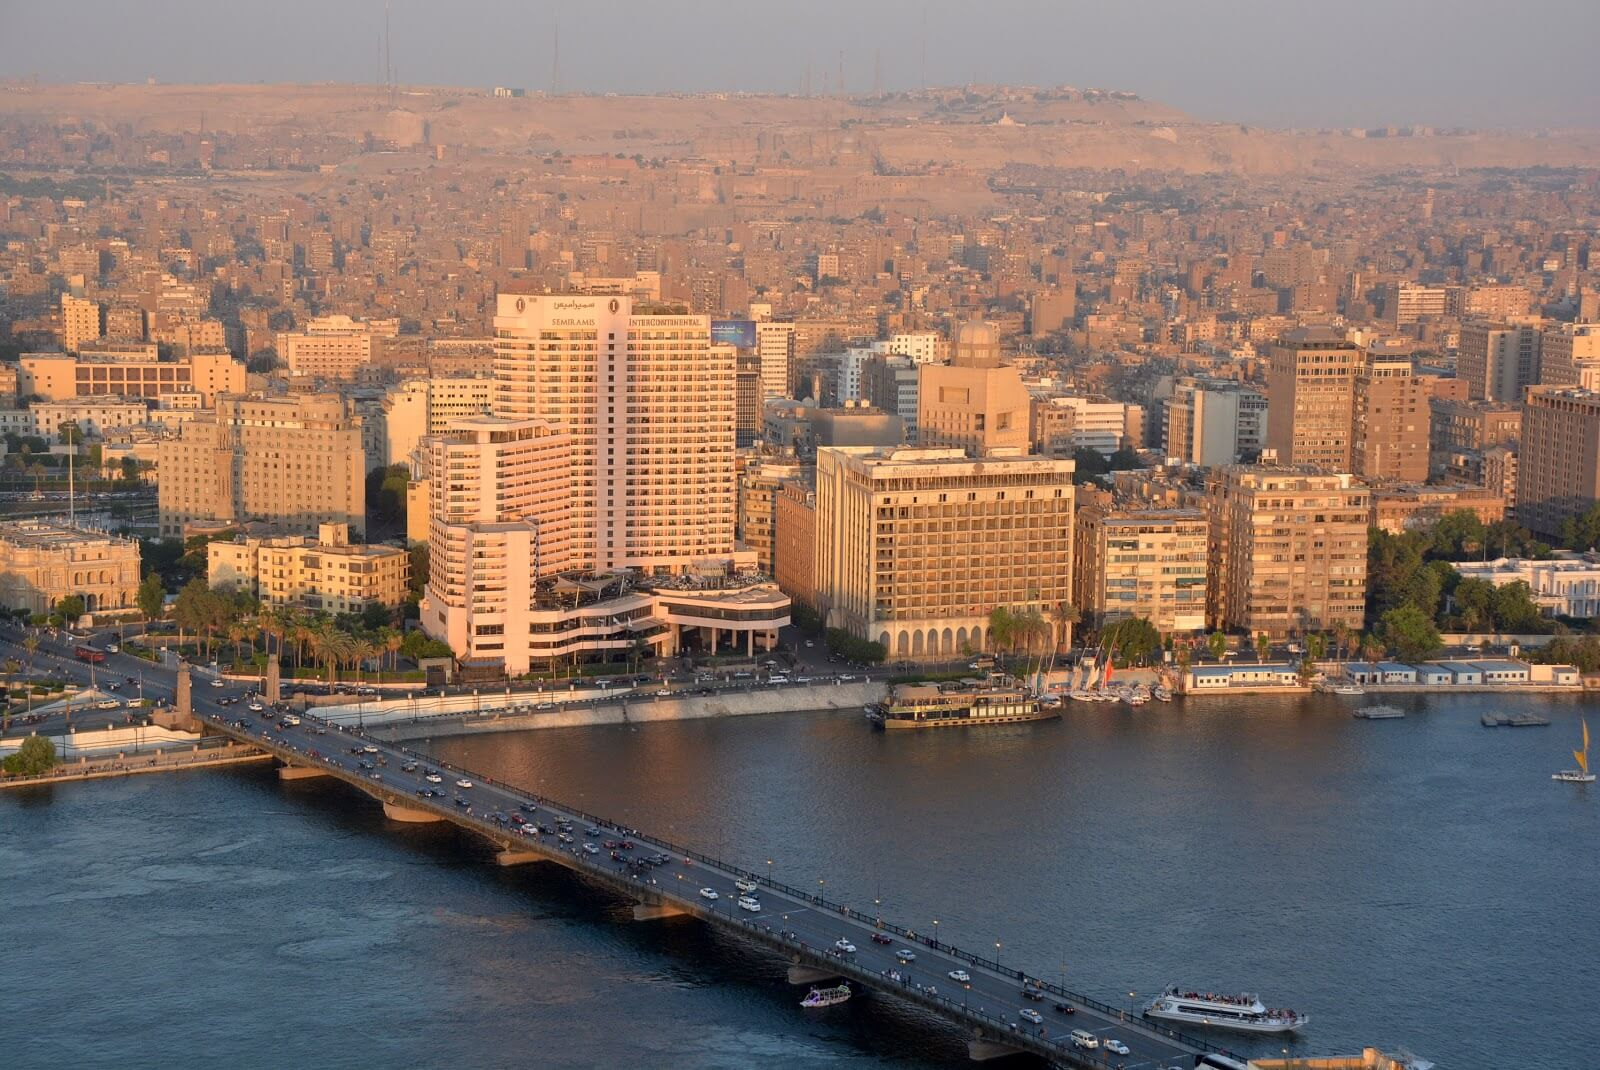 Egypt - Top 10 countries to outsource software and web development 2020